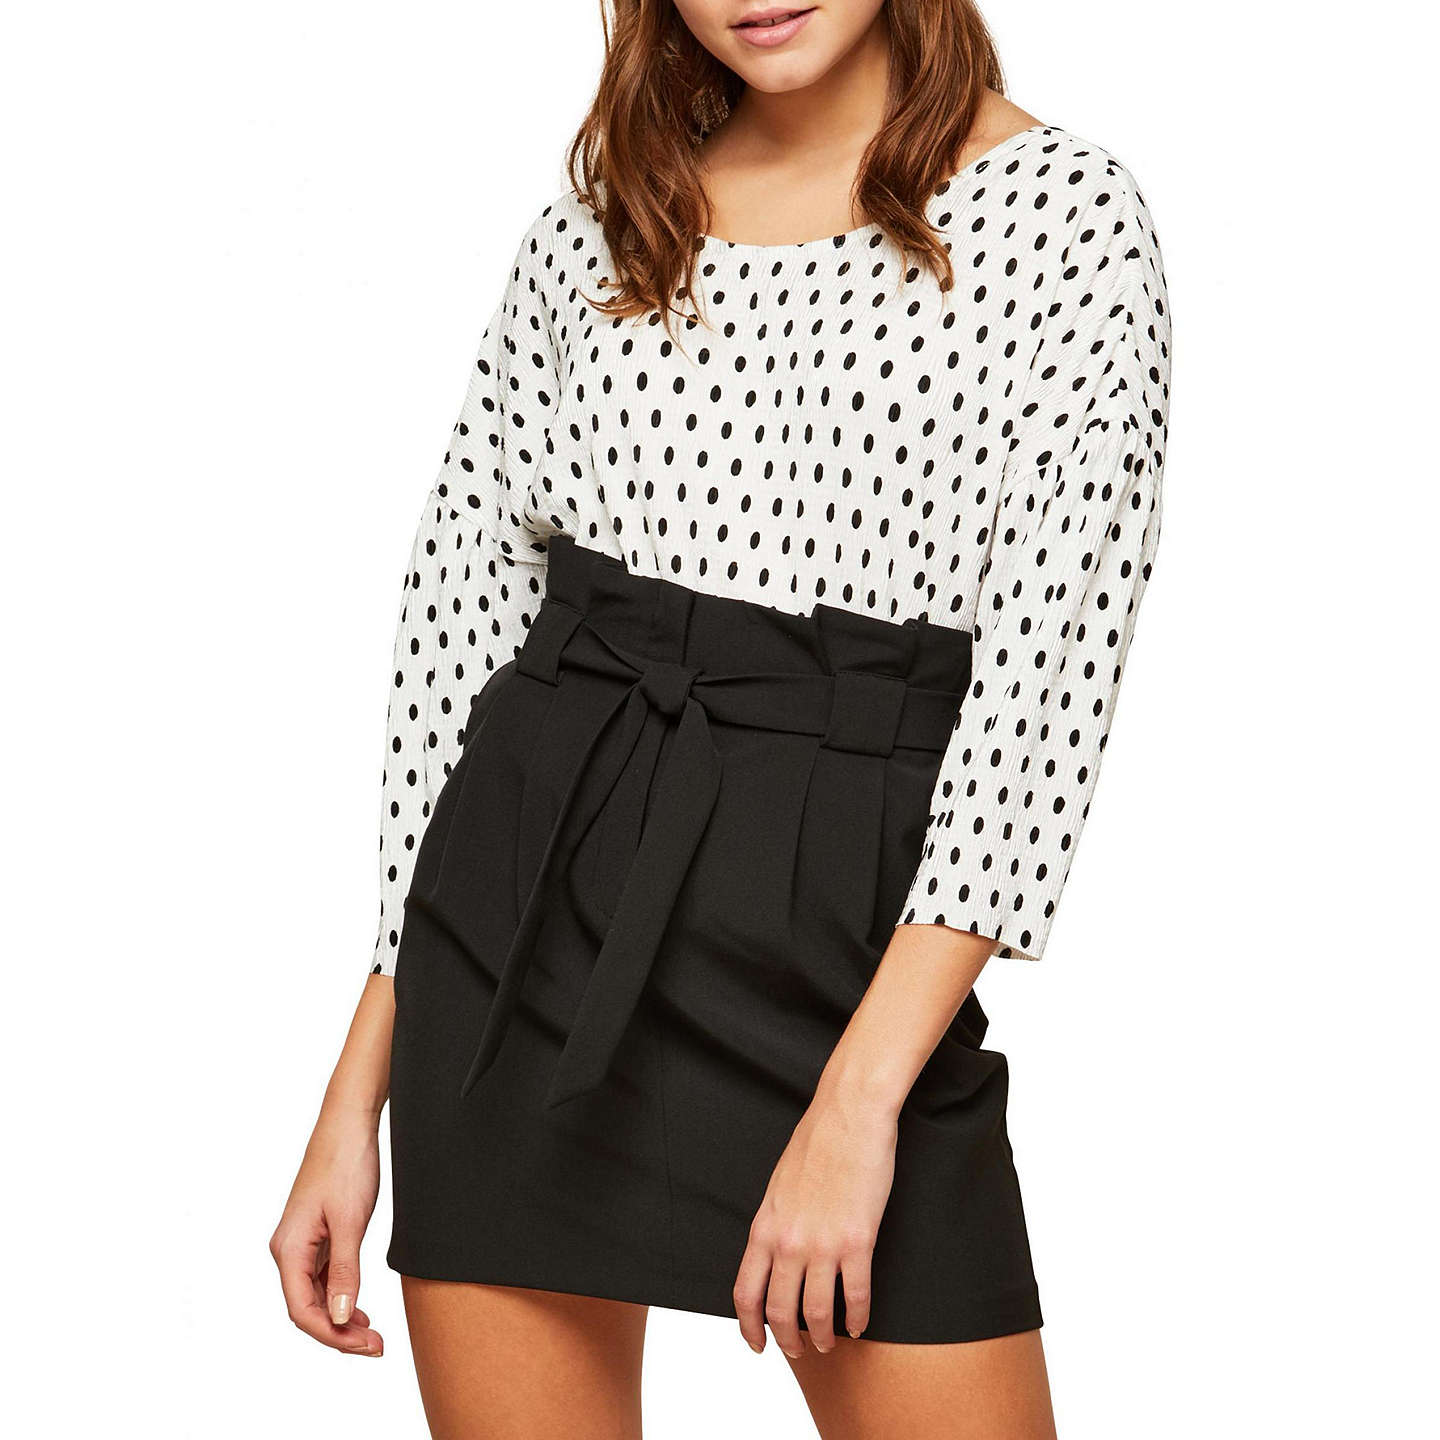 BuyMiss Selfridge Paper Bag Skirt, Black, 10 Online at johnlewis.com